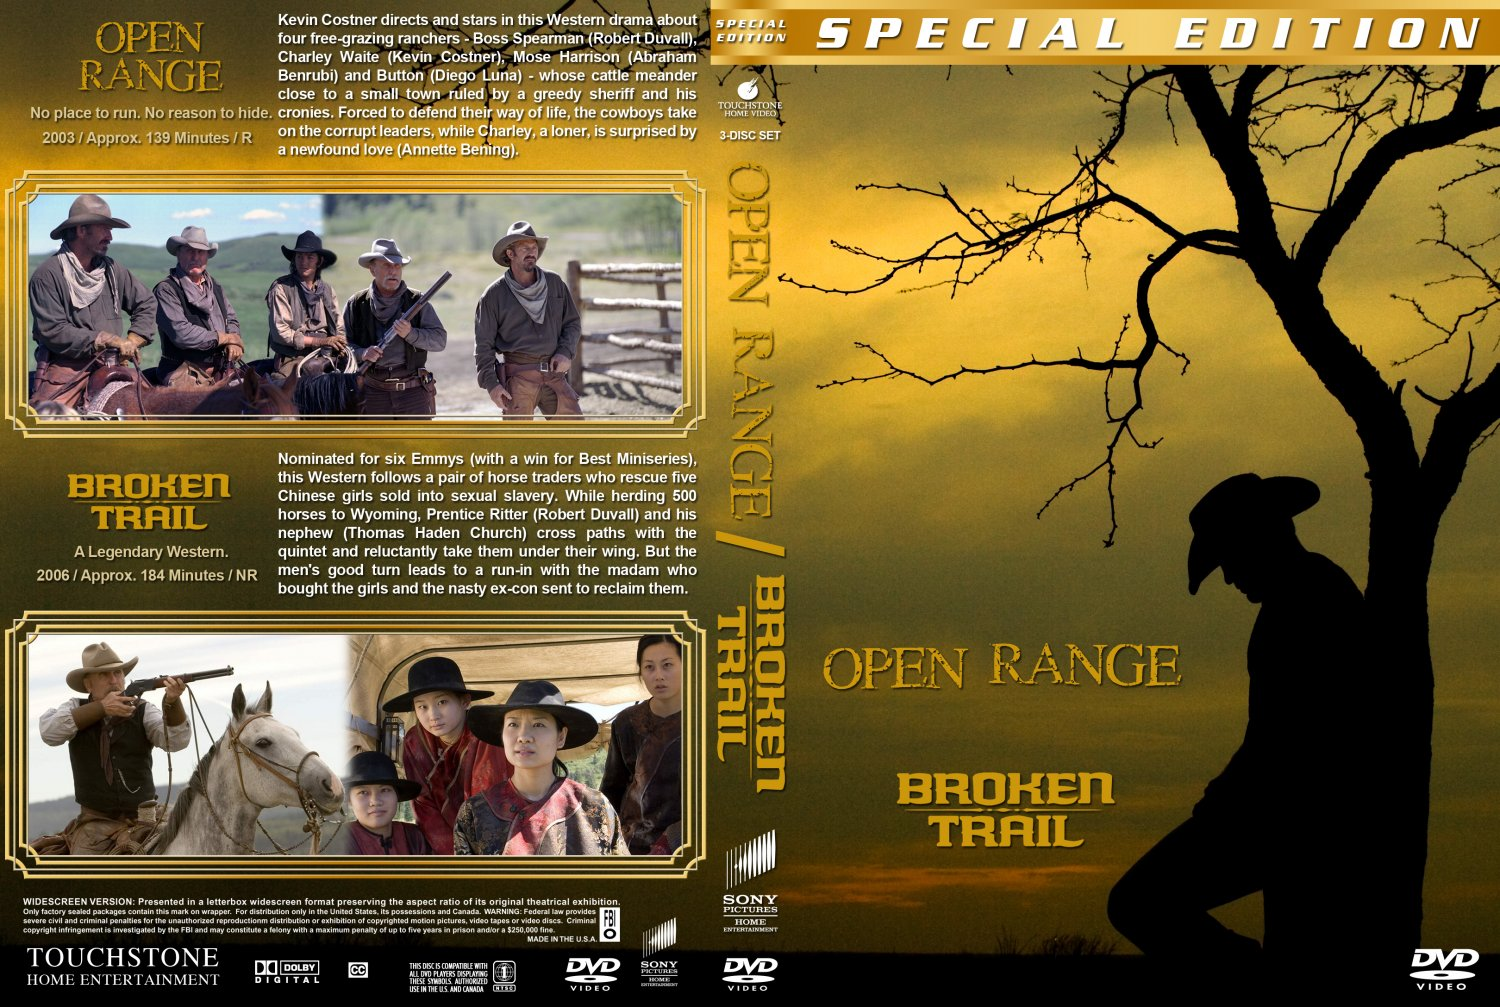 open range broken trail double feature movie dvd custom covers open trail double dvd covers. Black Bedroom Furniture Sets. Home Design Ideas